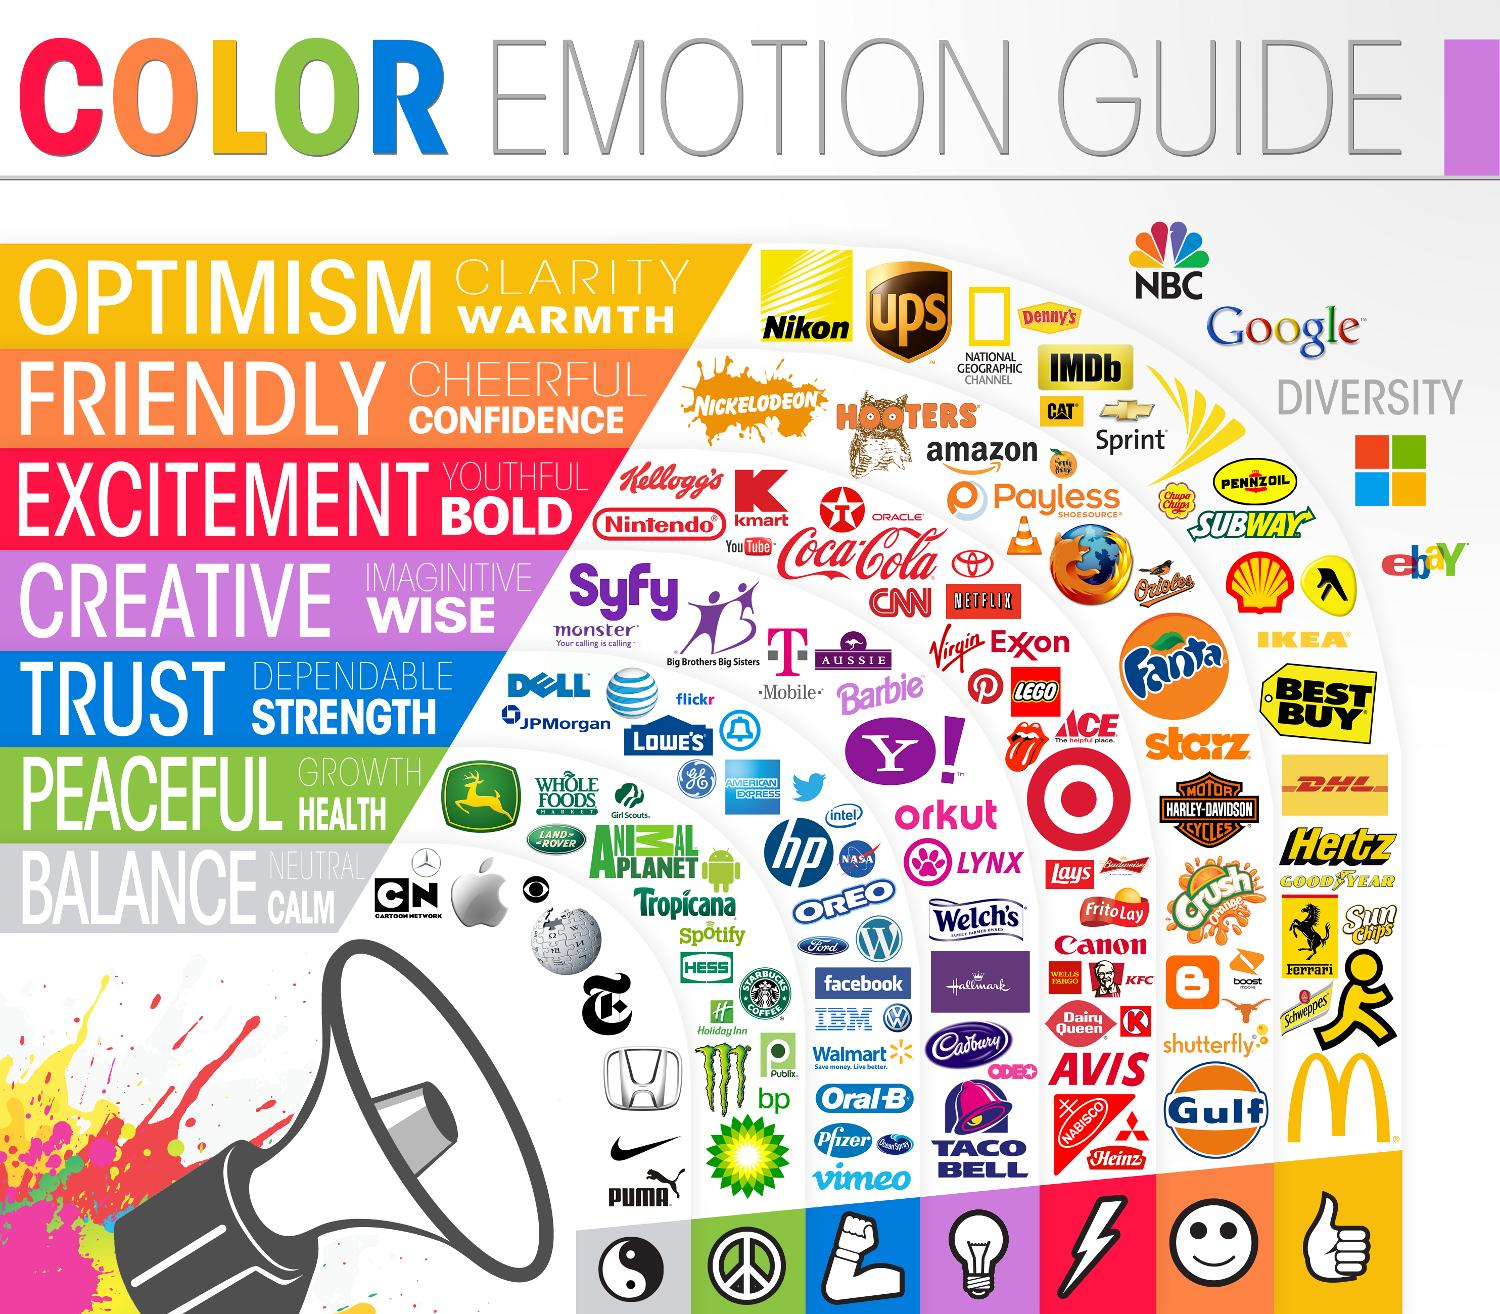 Colors-of-Companies